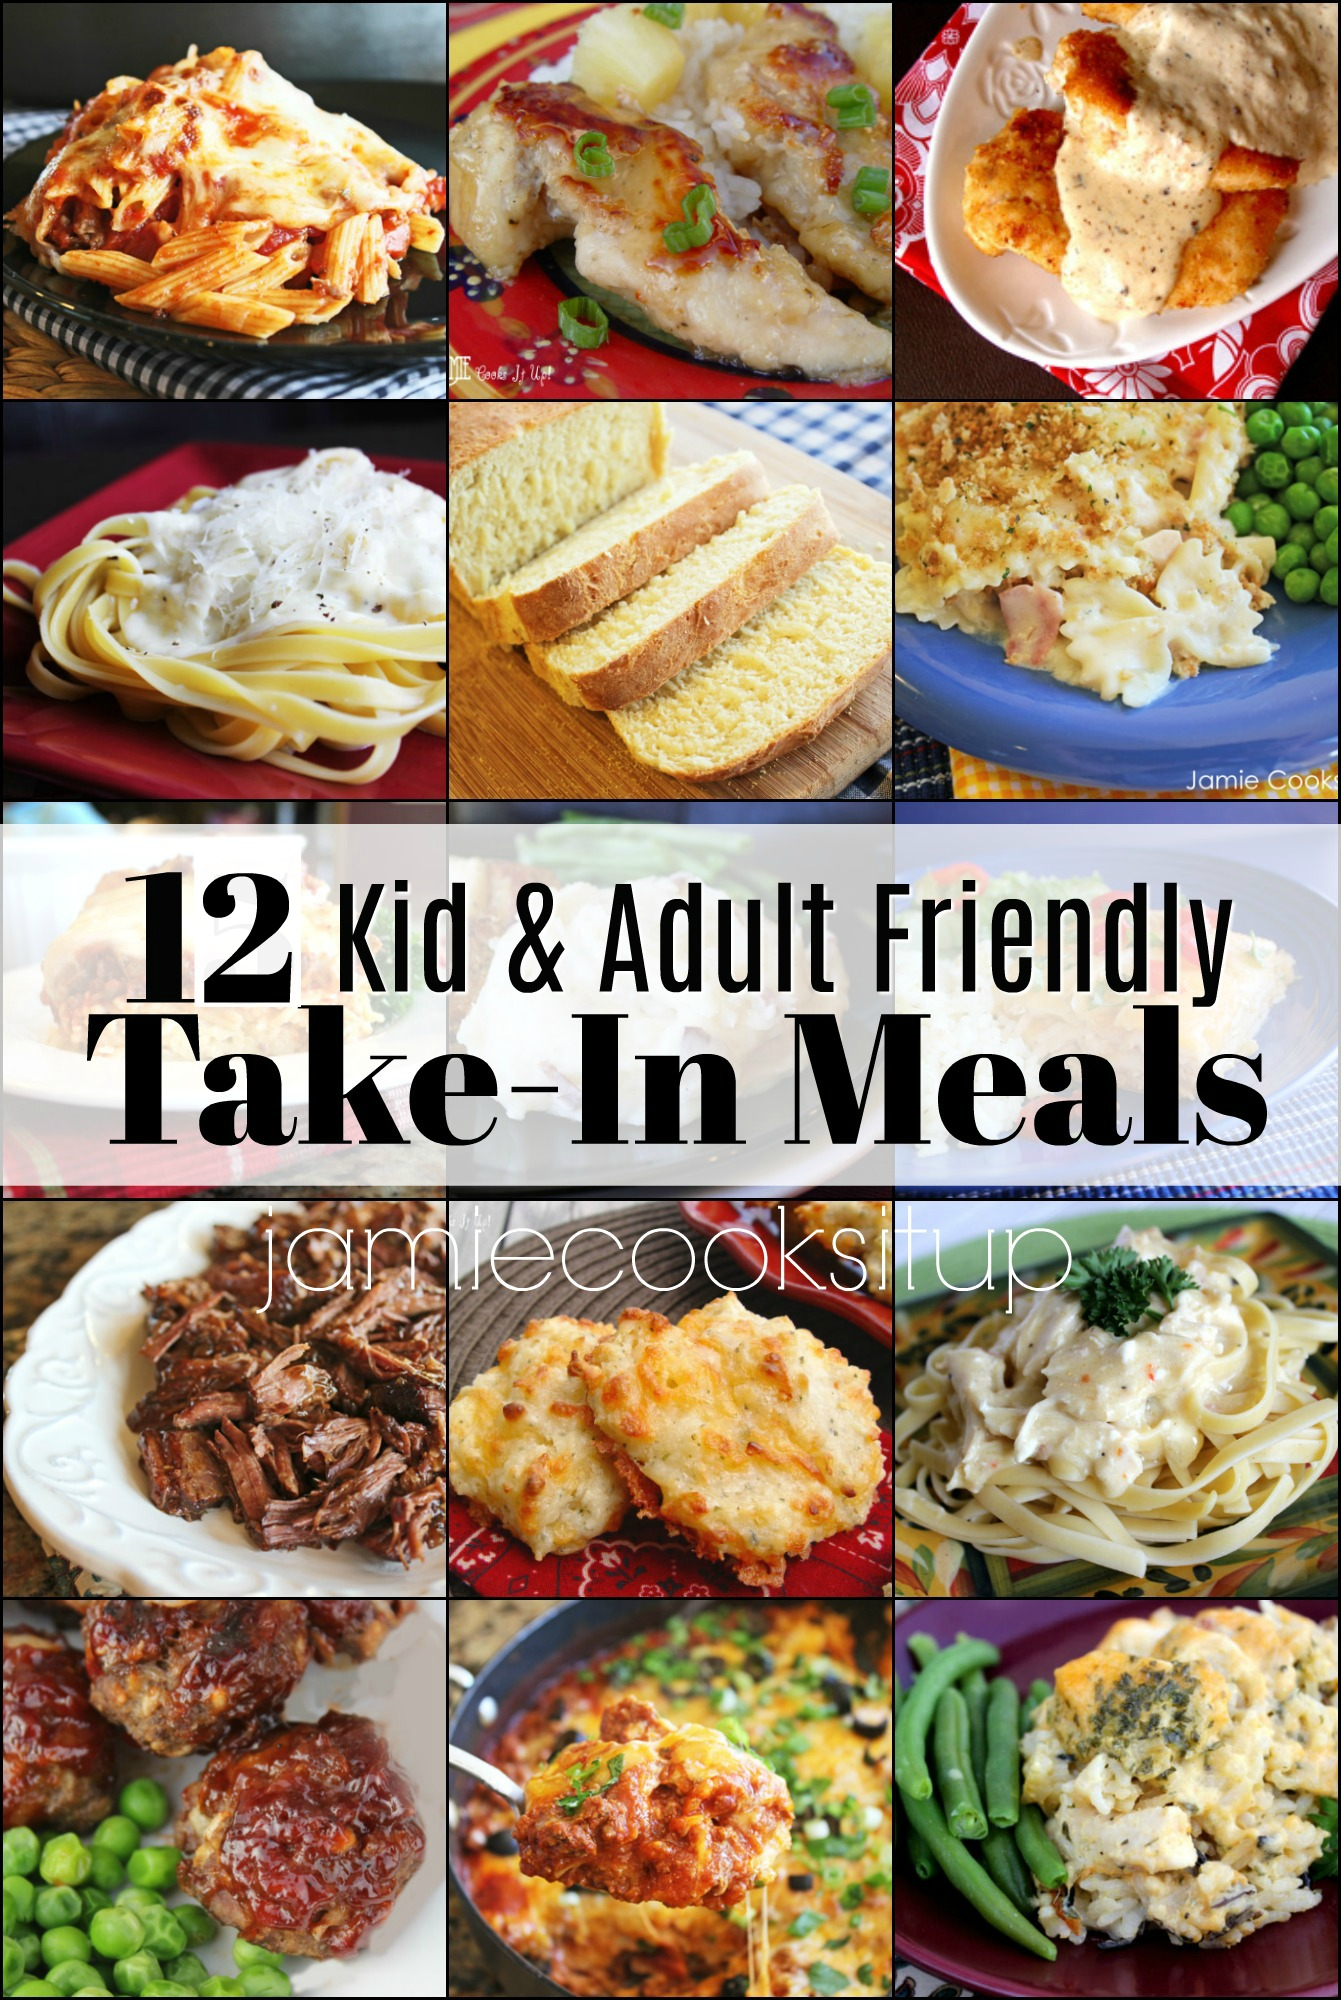 12 Kid and Adult Friendly Take-In Meals Including Side Dishes and Dessert